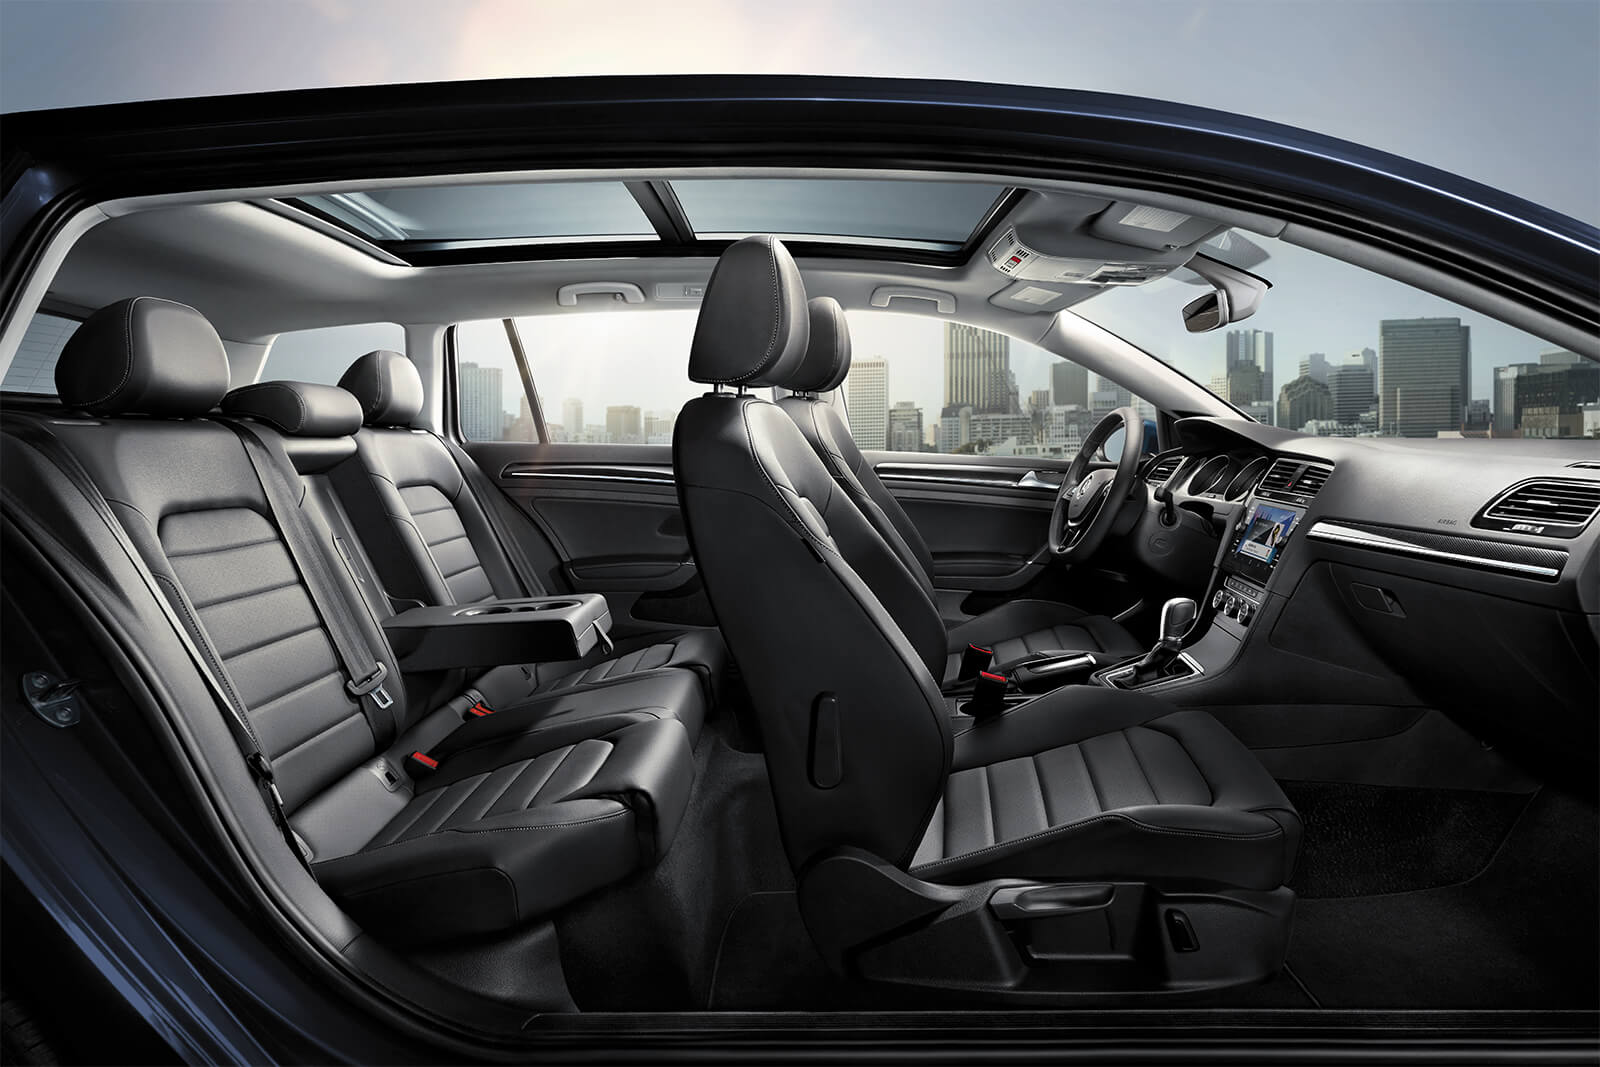 2019 Volkswagen Golf SportWagen Seating Interior